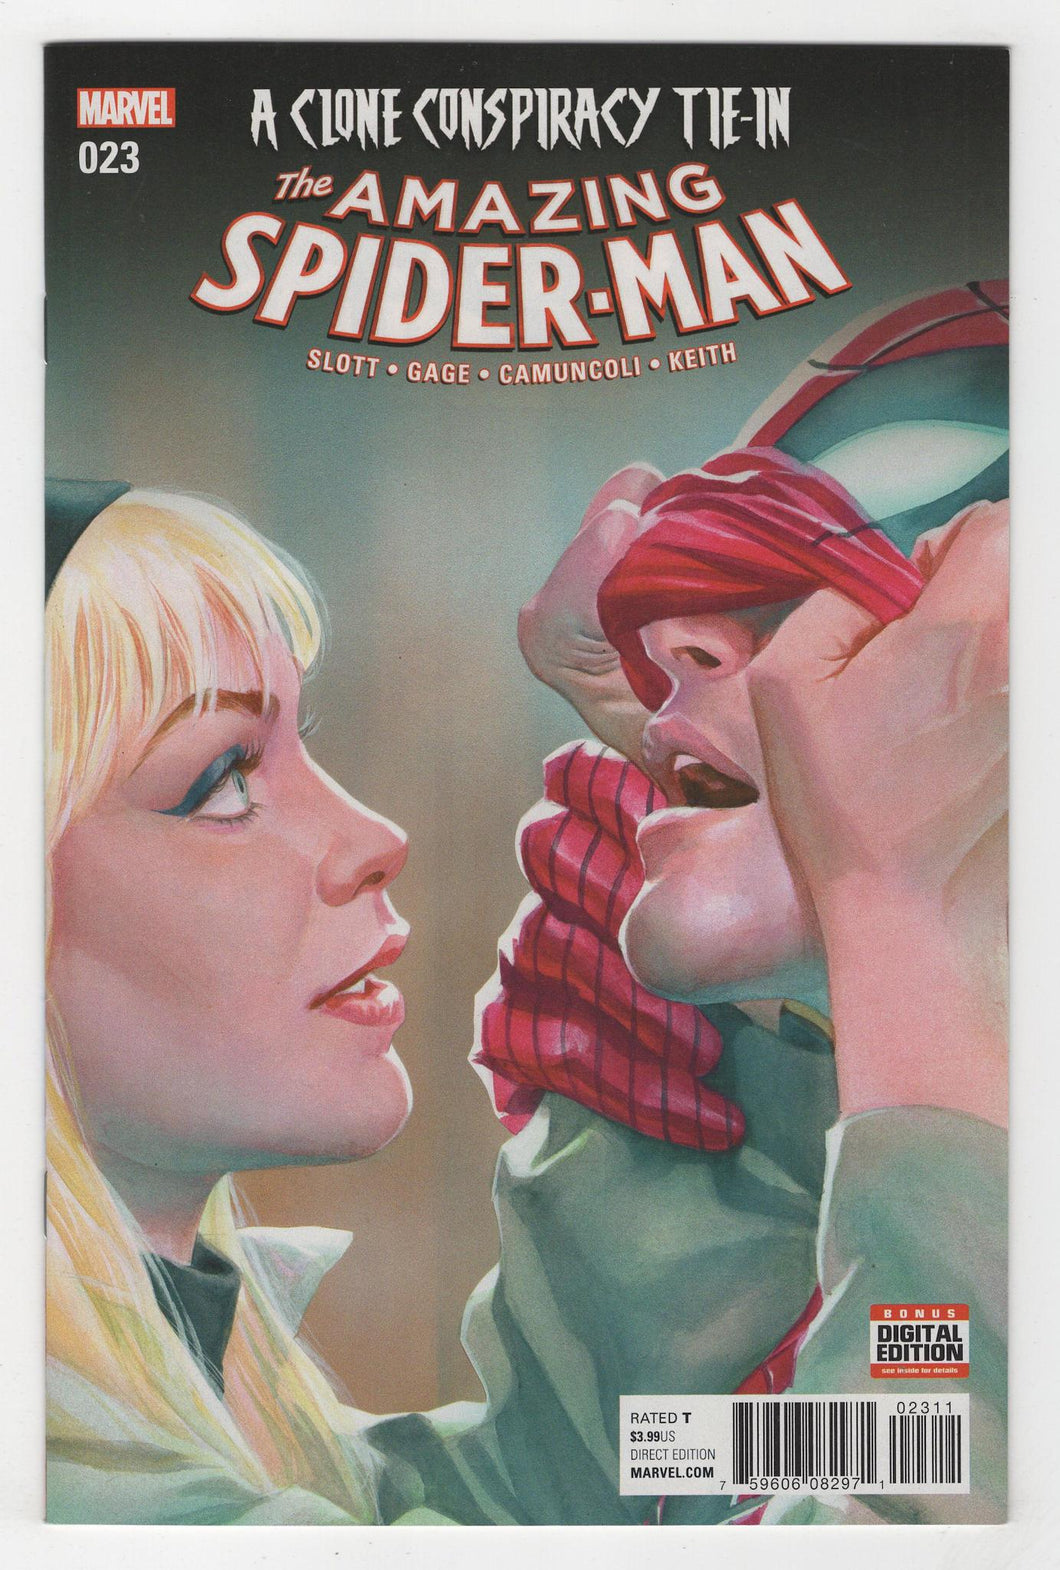 Amazing Spider-Man #23 Cover Front